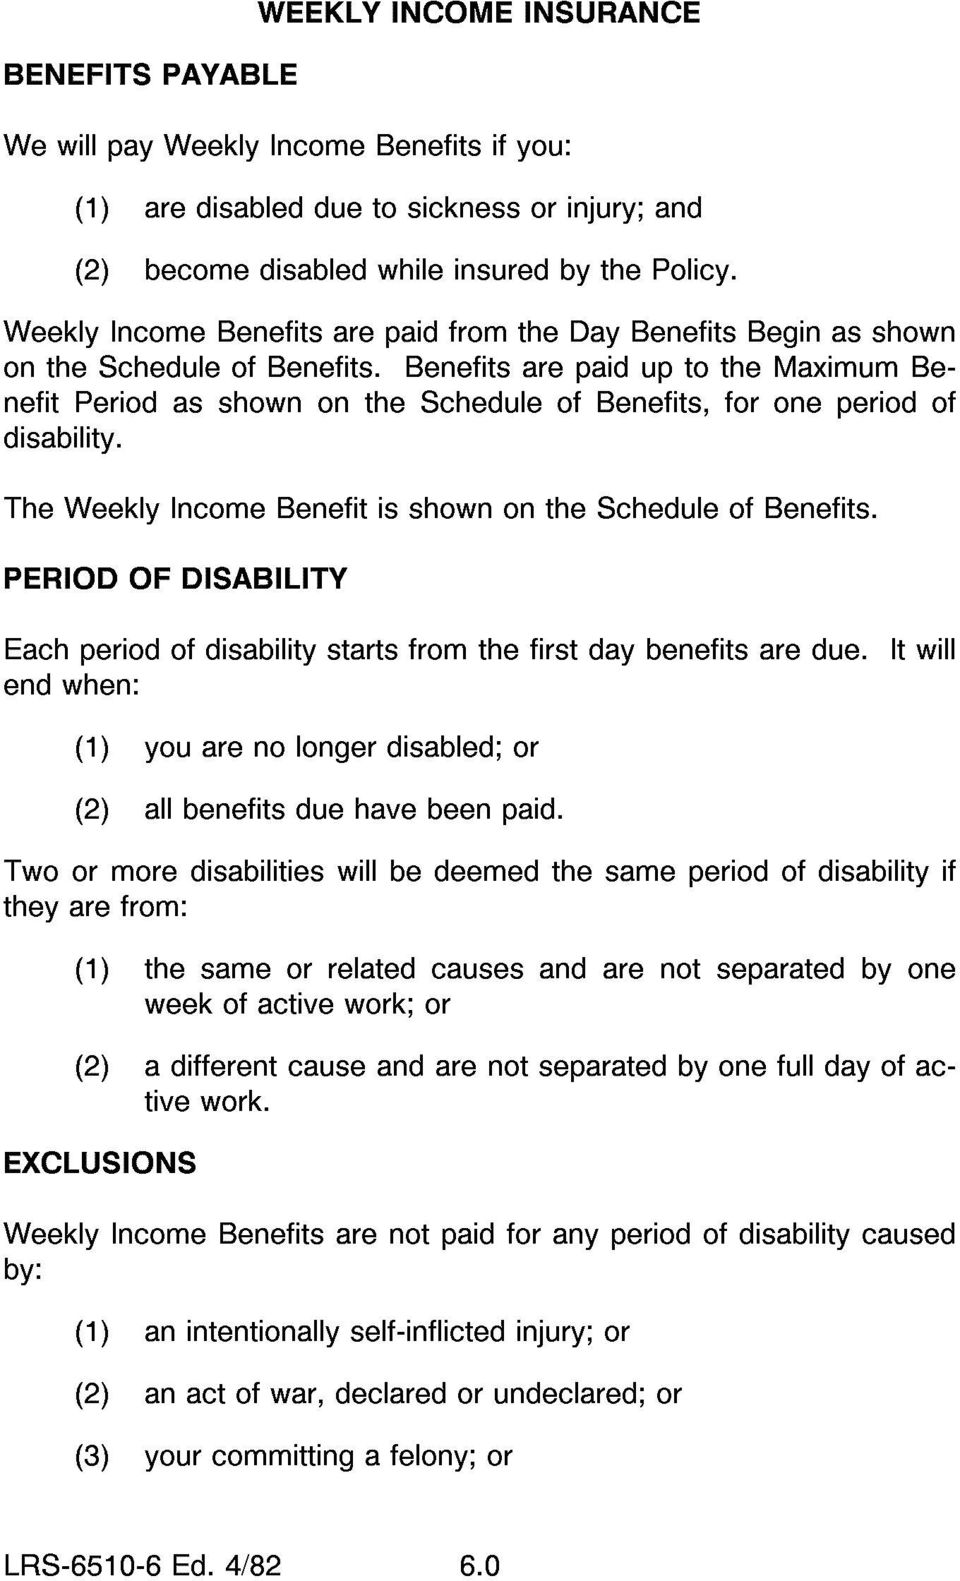 Benefits are paid up to the Maximum Benefit Period as shown on the Schedule of Benefits, for one period of disability. The Weekly Income Benefit is shown on the Schedule of Benefits.